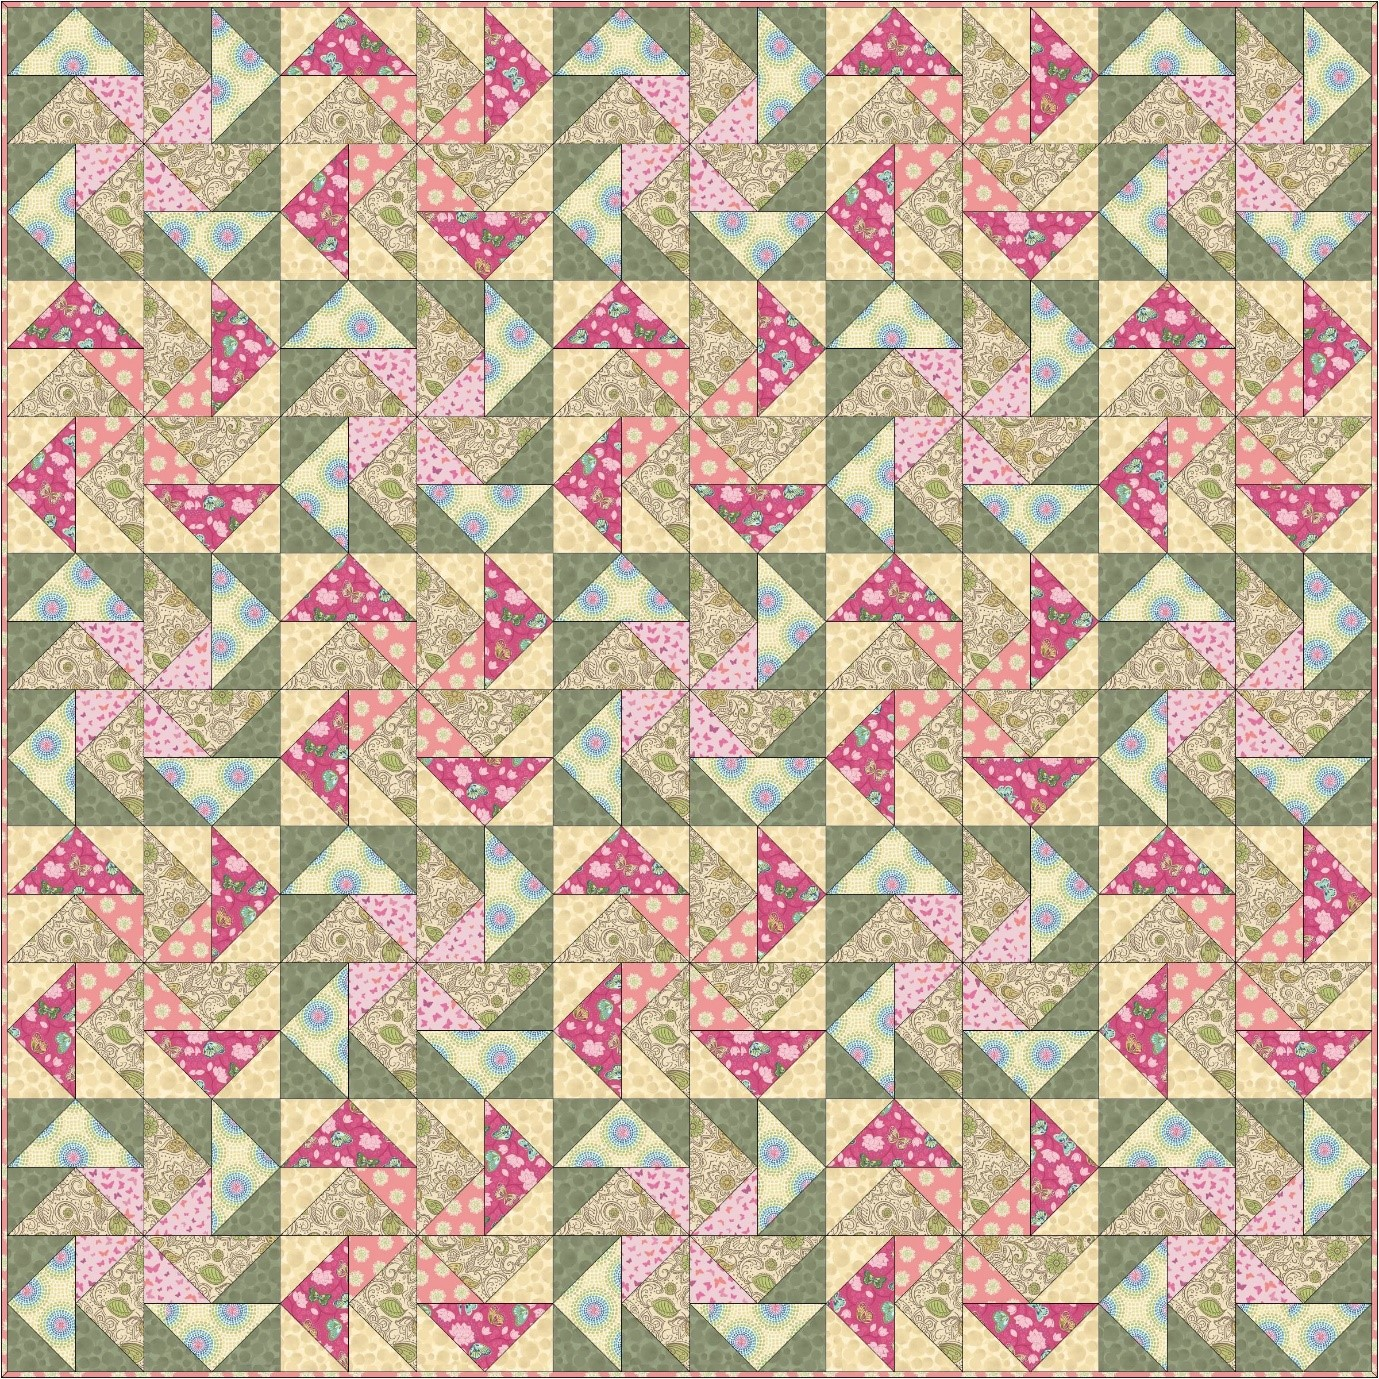 Sew Mindful Quilt